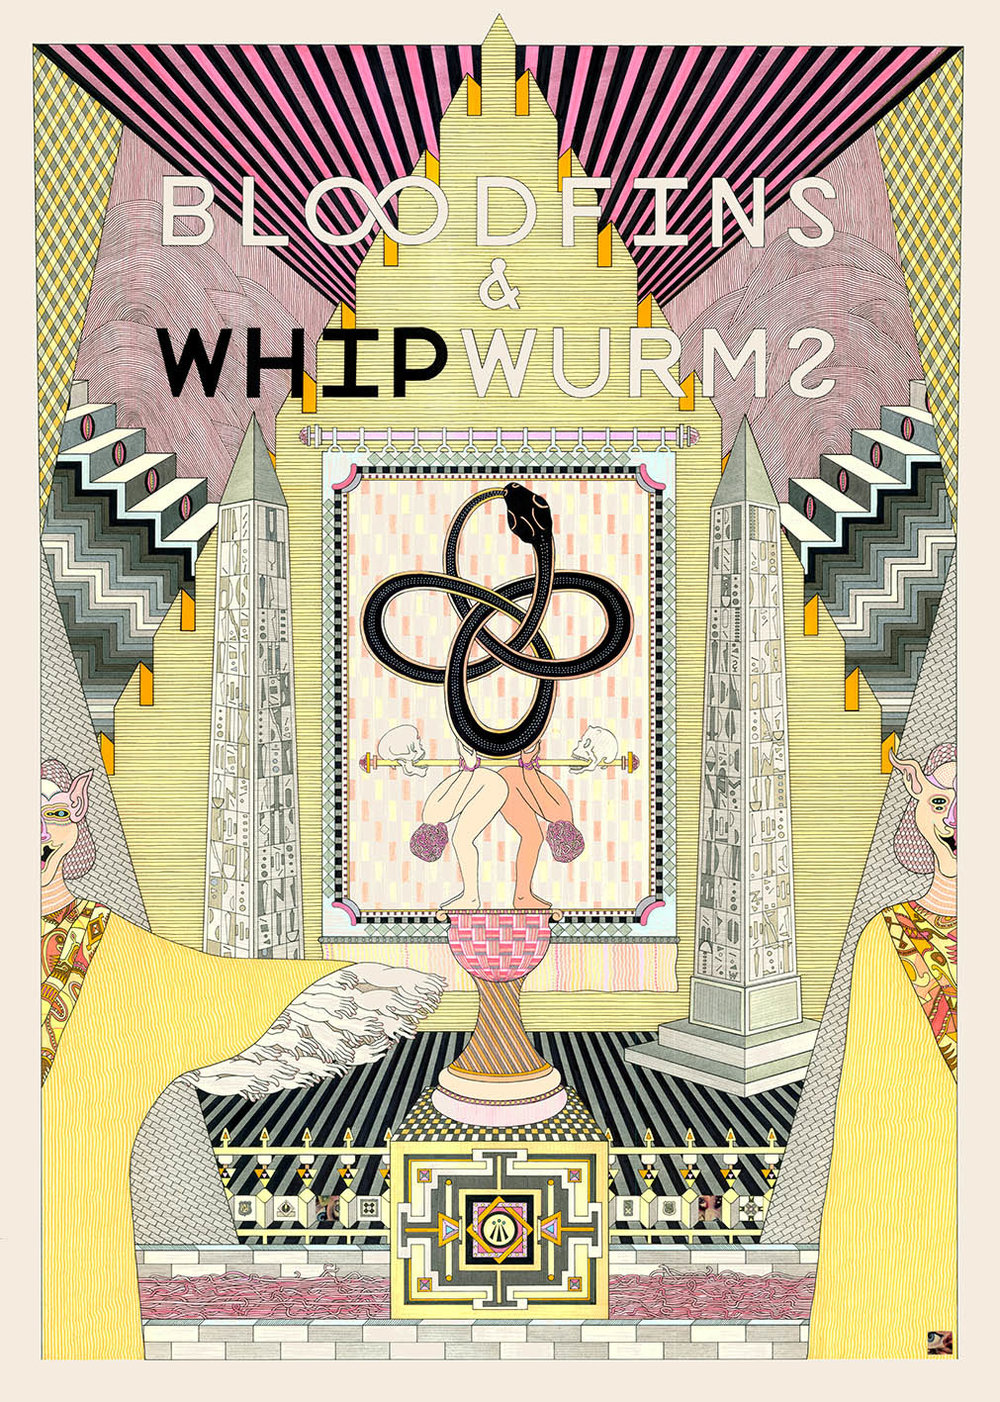 Bloodfins & Whipwurms, 2013